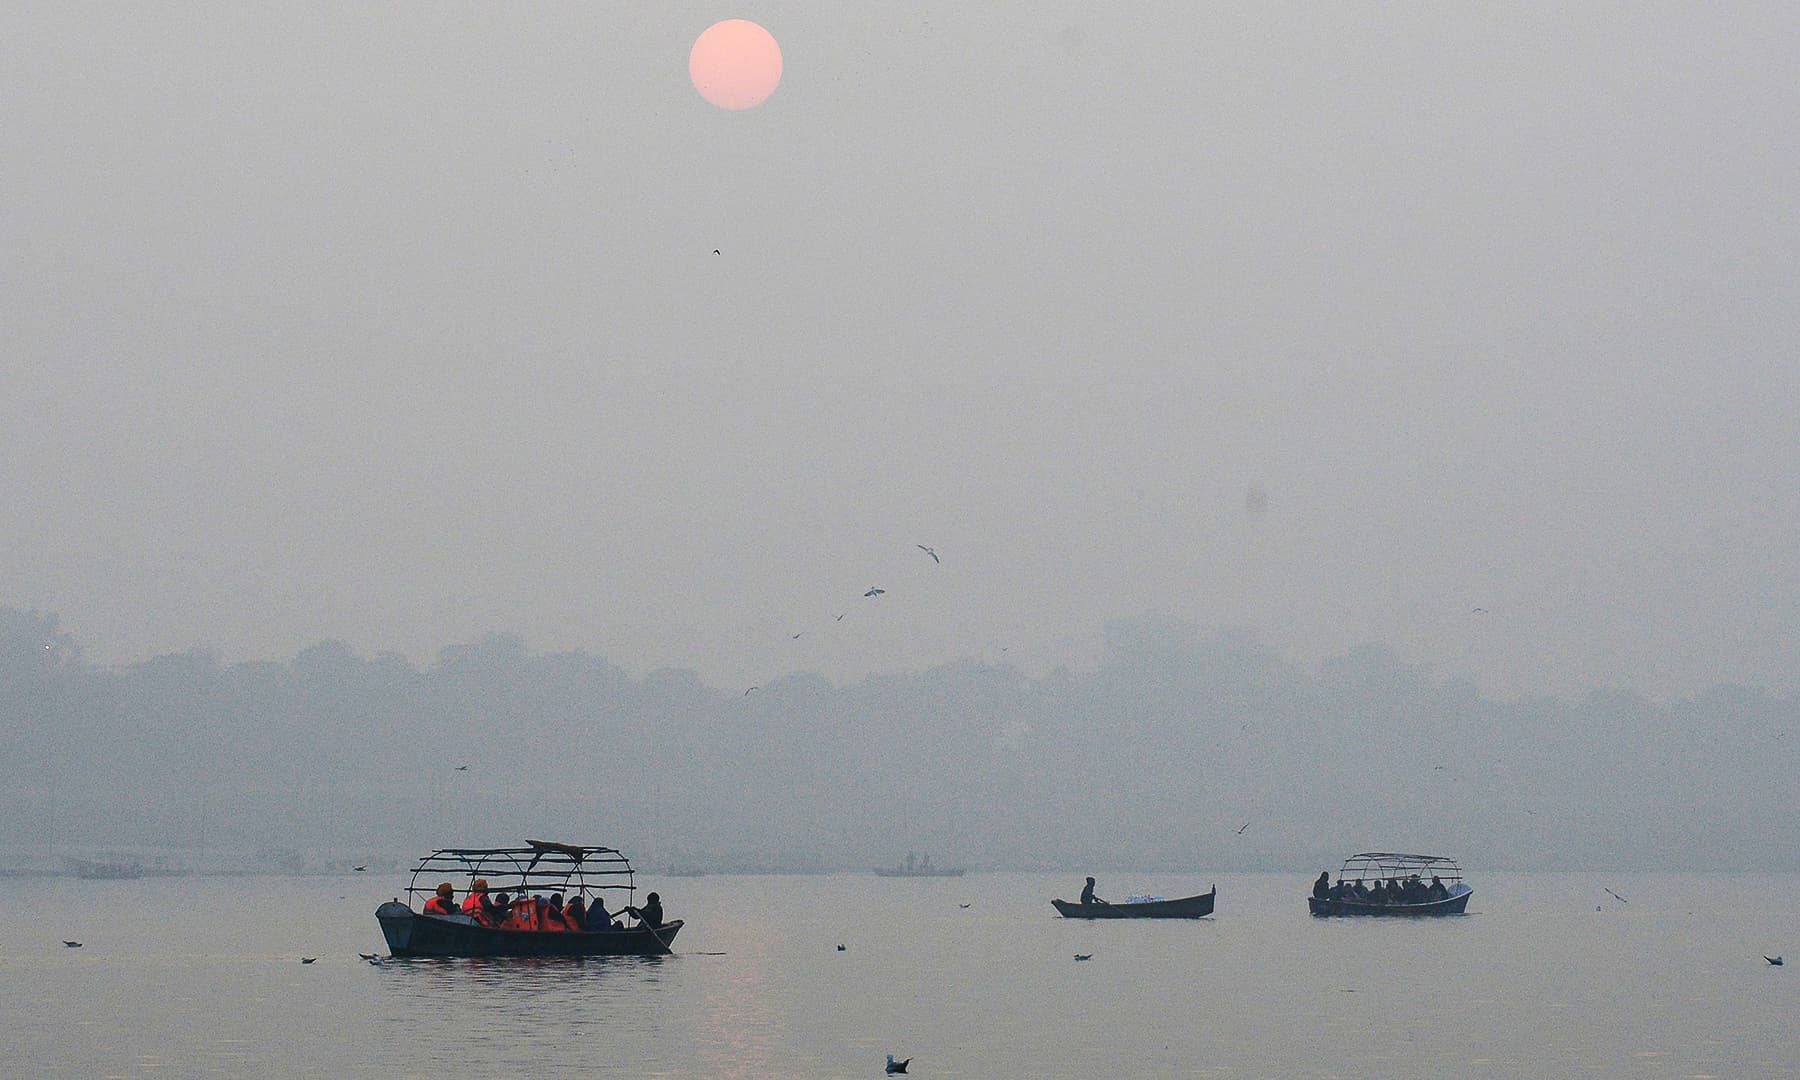 People take an evening boat ride during the last sunset of the year at the Sangam area, the confluence of the rivers Ganges, Yamuna and mythical Saraswati in Allahabad on Tuesday. — AFP